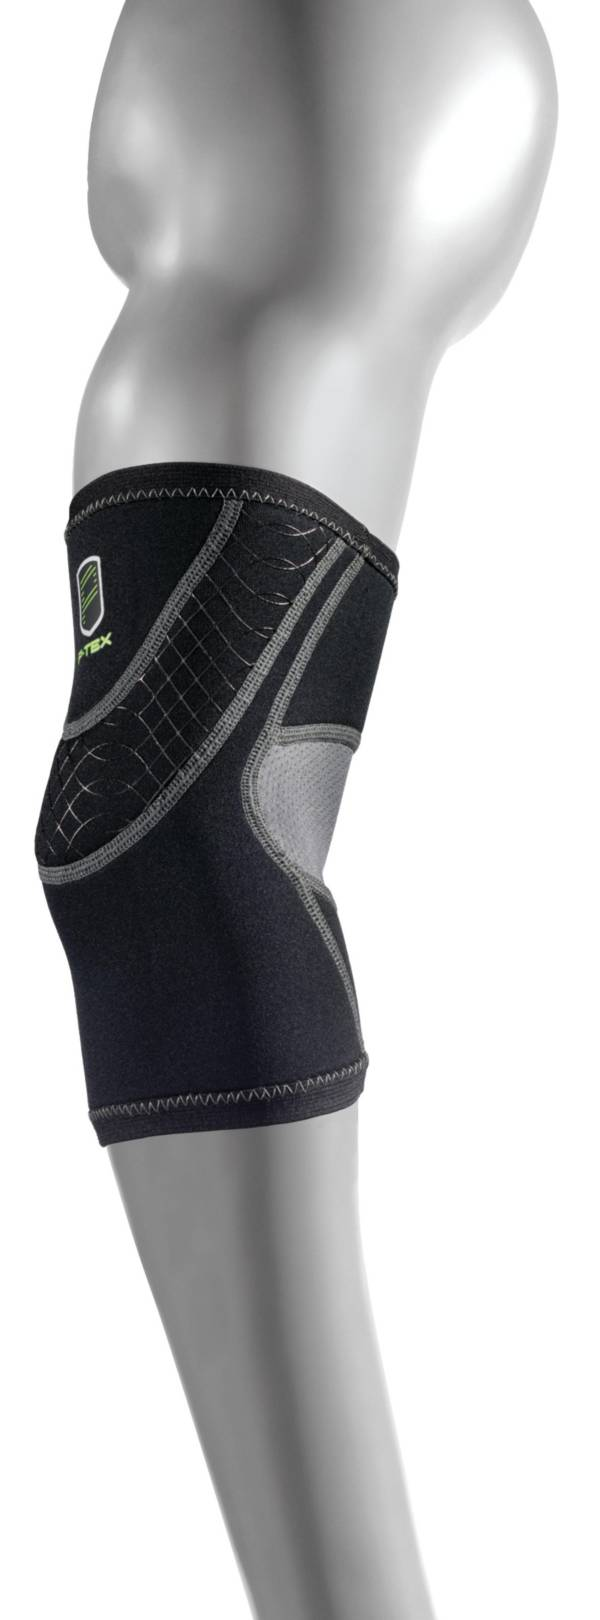 P-TEX Pro Elbow Sleeve product image